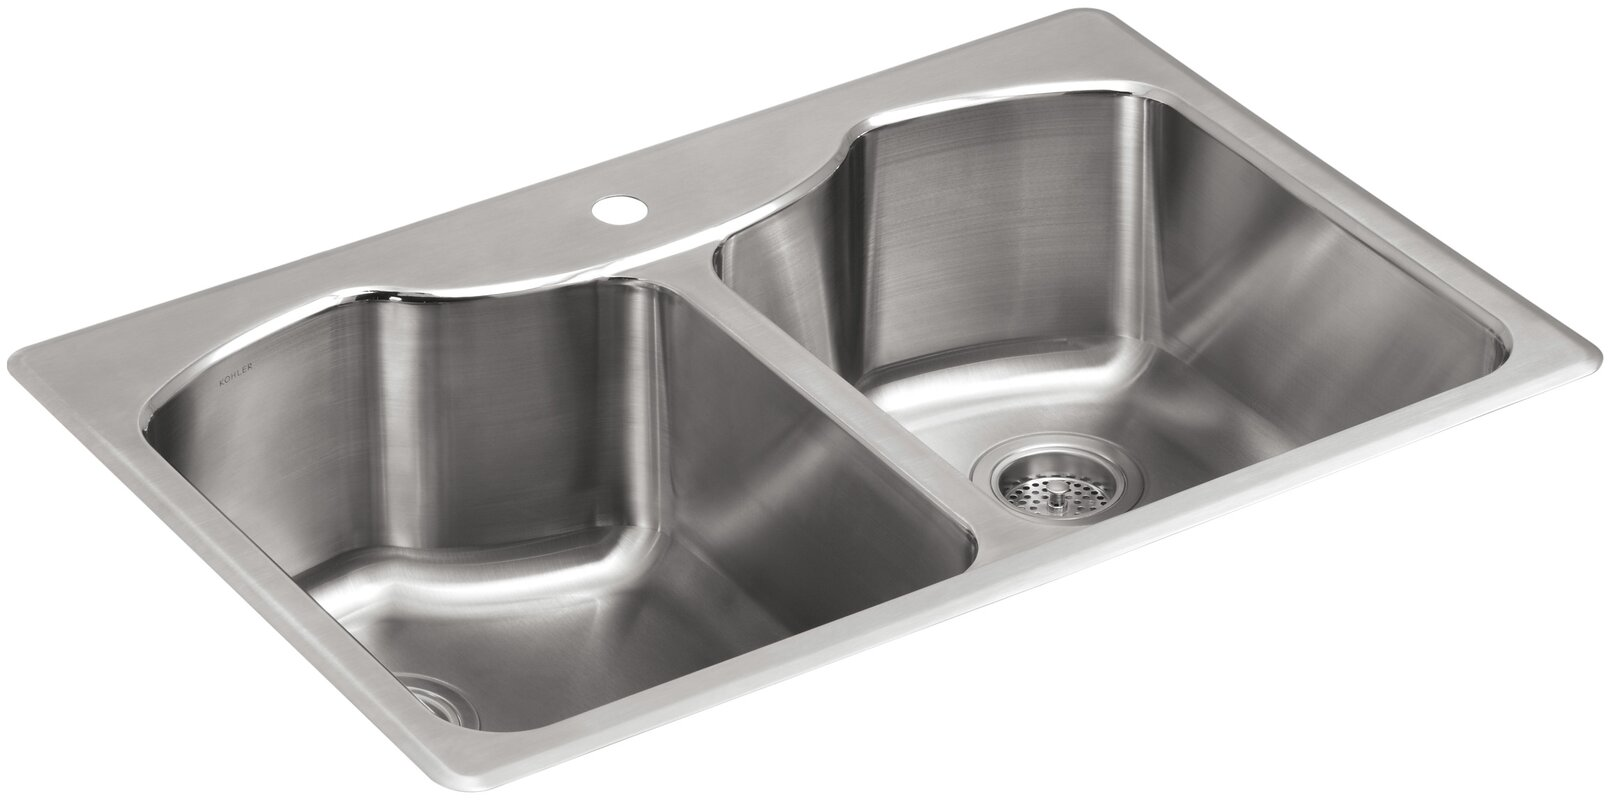 Kohler octave 33 x 22 x 9 5 16 top mount double equal for Best quality stainless steel kitchen sinks